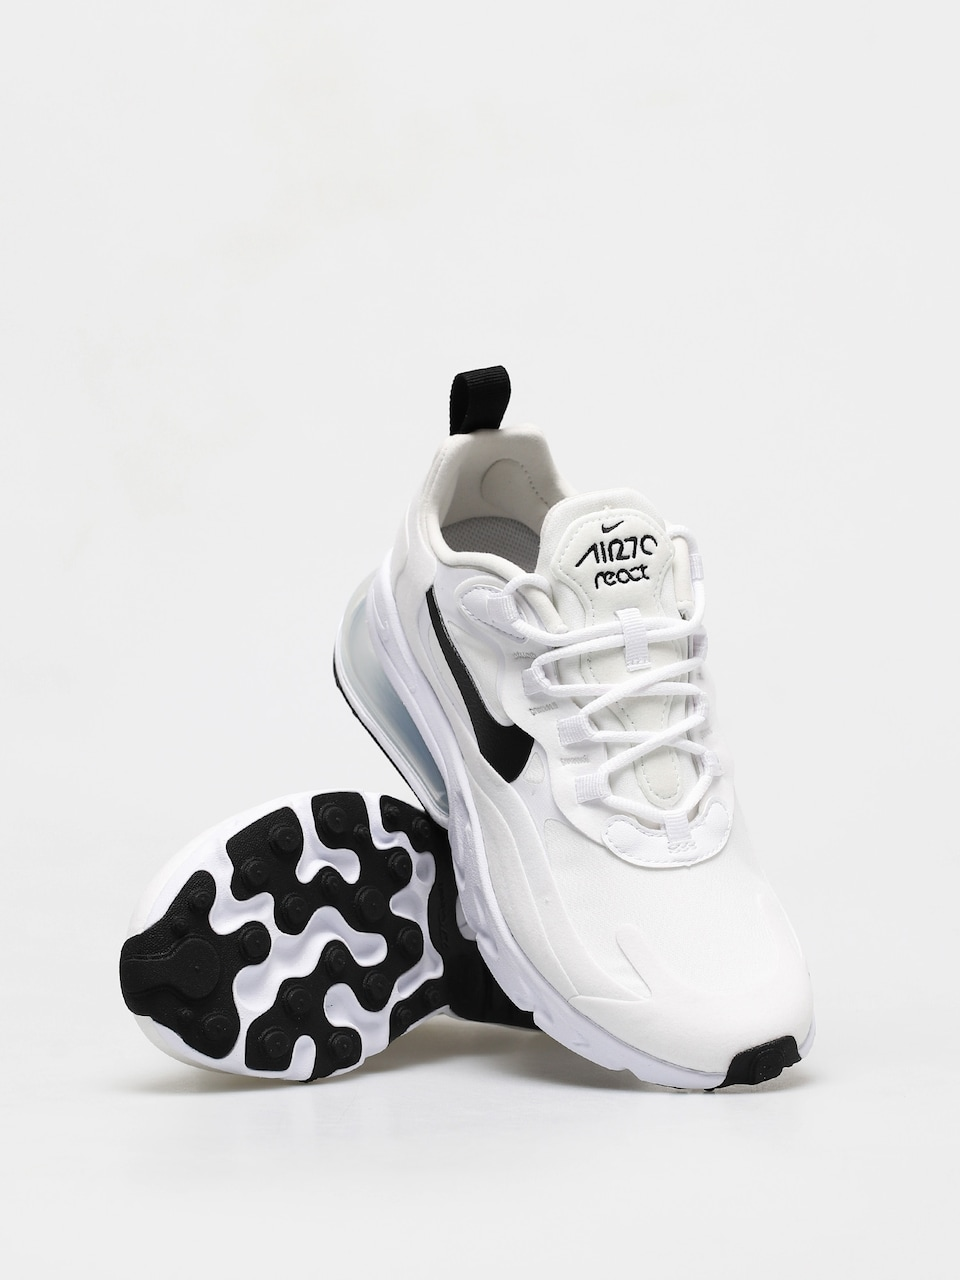 air max 270 react white black metallic silver